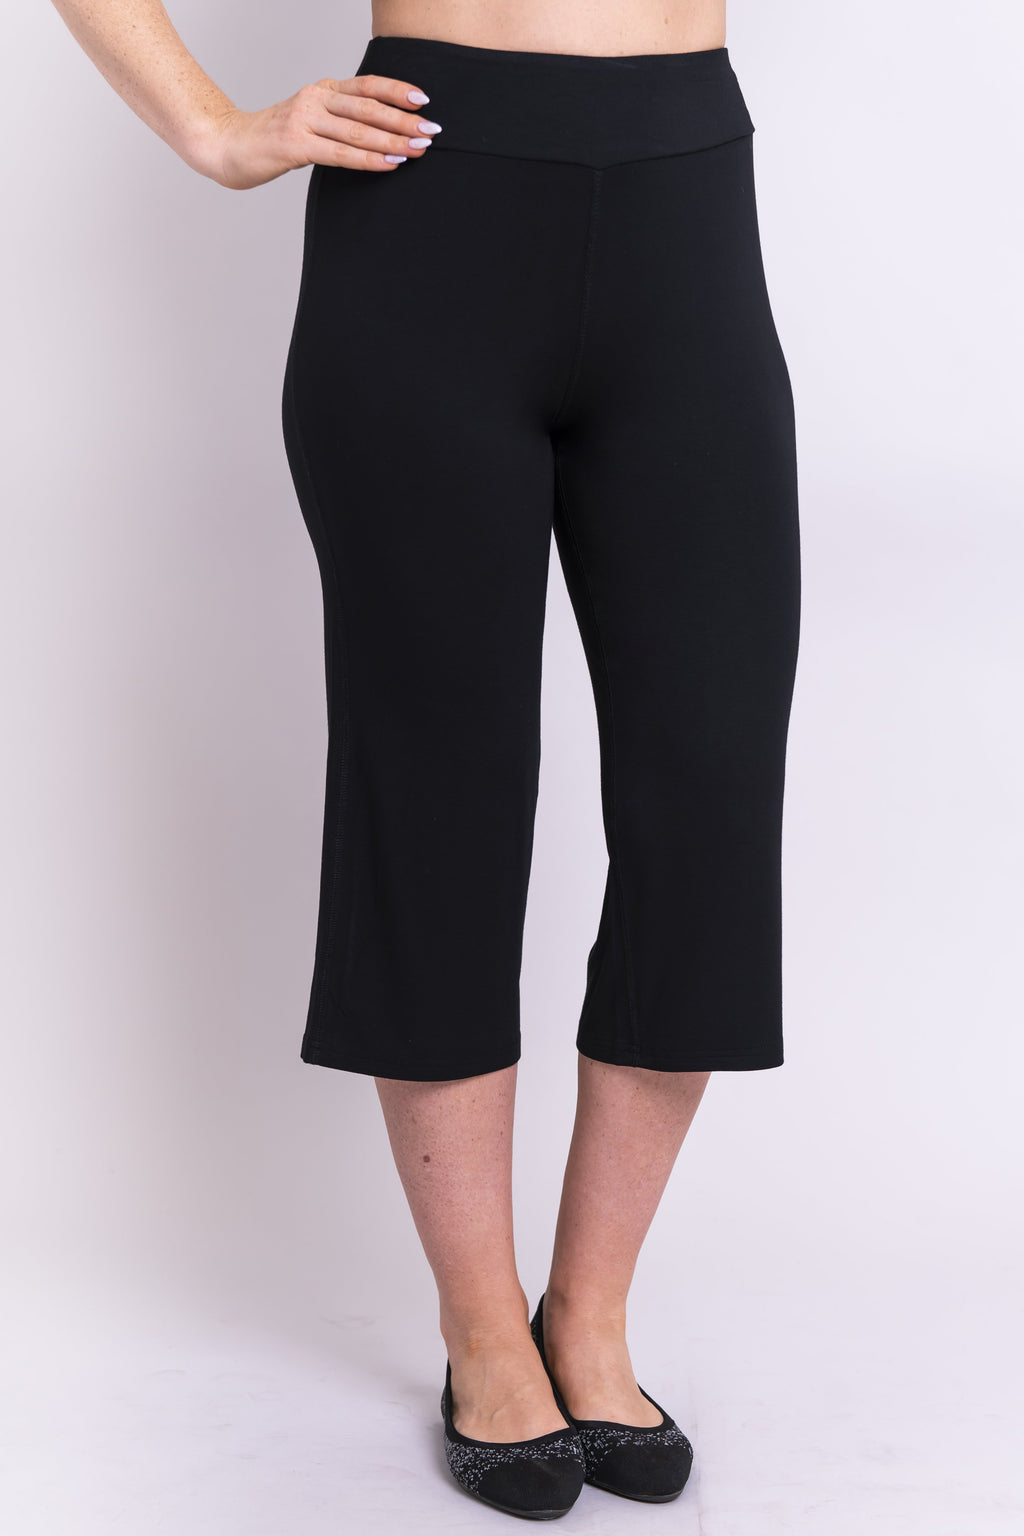 Yoga Capri, Black